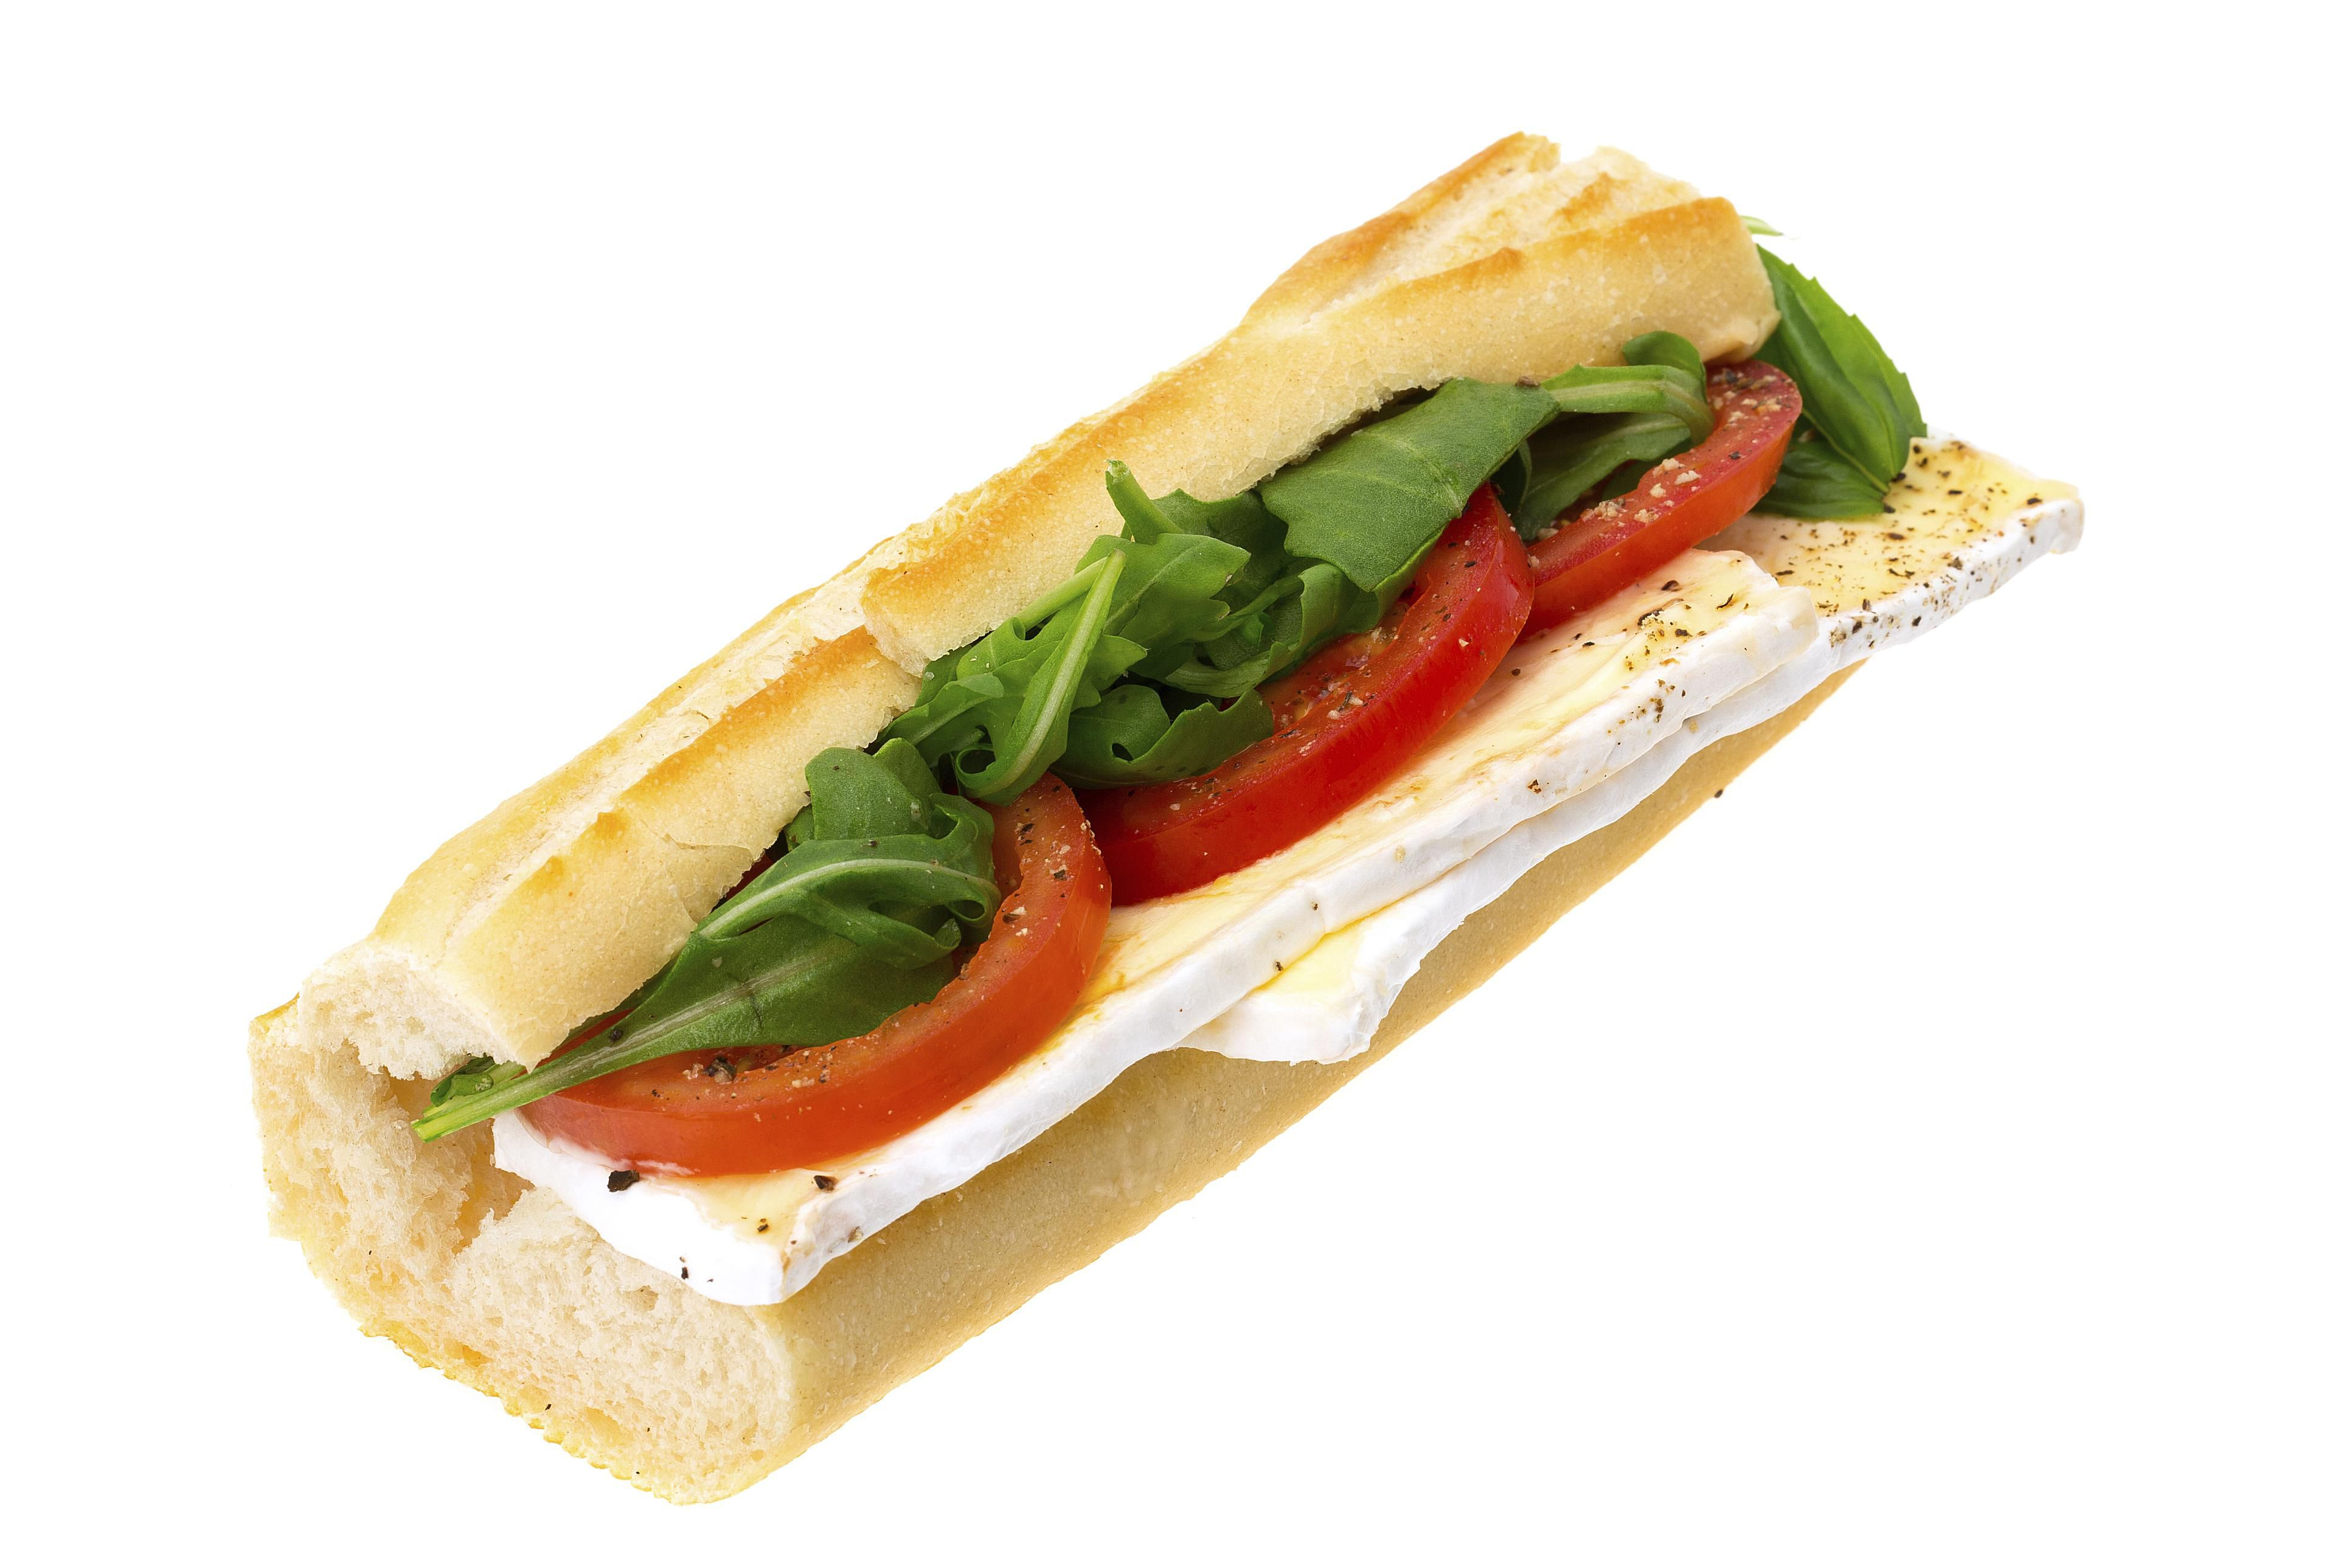 home kitchen ideas decorating with Tomato Brie Basil Sandwich 479756 on 1m016e2 together with Vintage Timber House Design Built Sallow Exterior Paint Color Ideas furthermore Decking Ideas Designs For Patio additionally Coffee Bar Ideas For Indoor Decor besides Gallerylist.